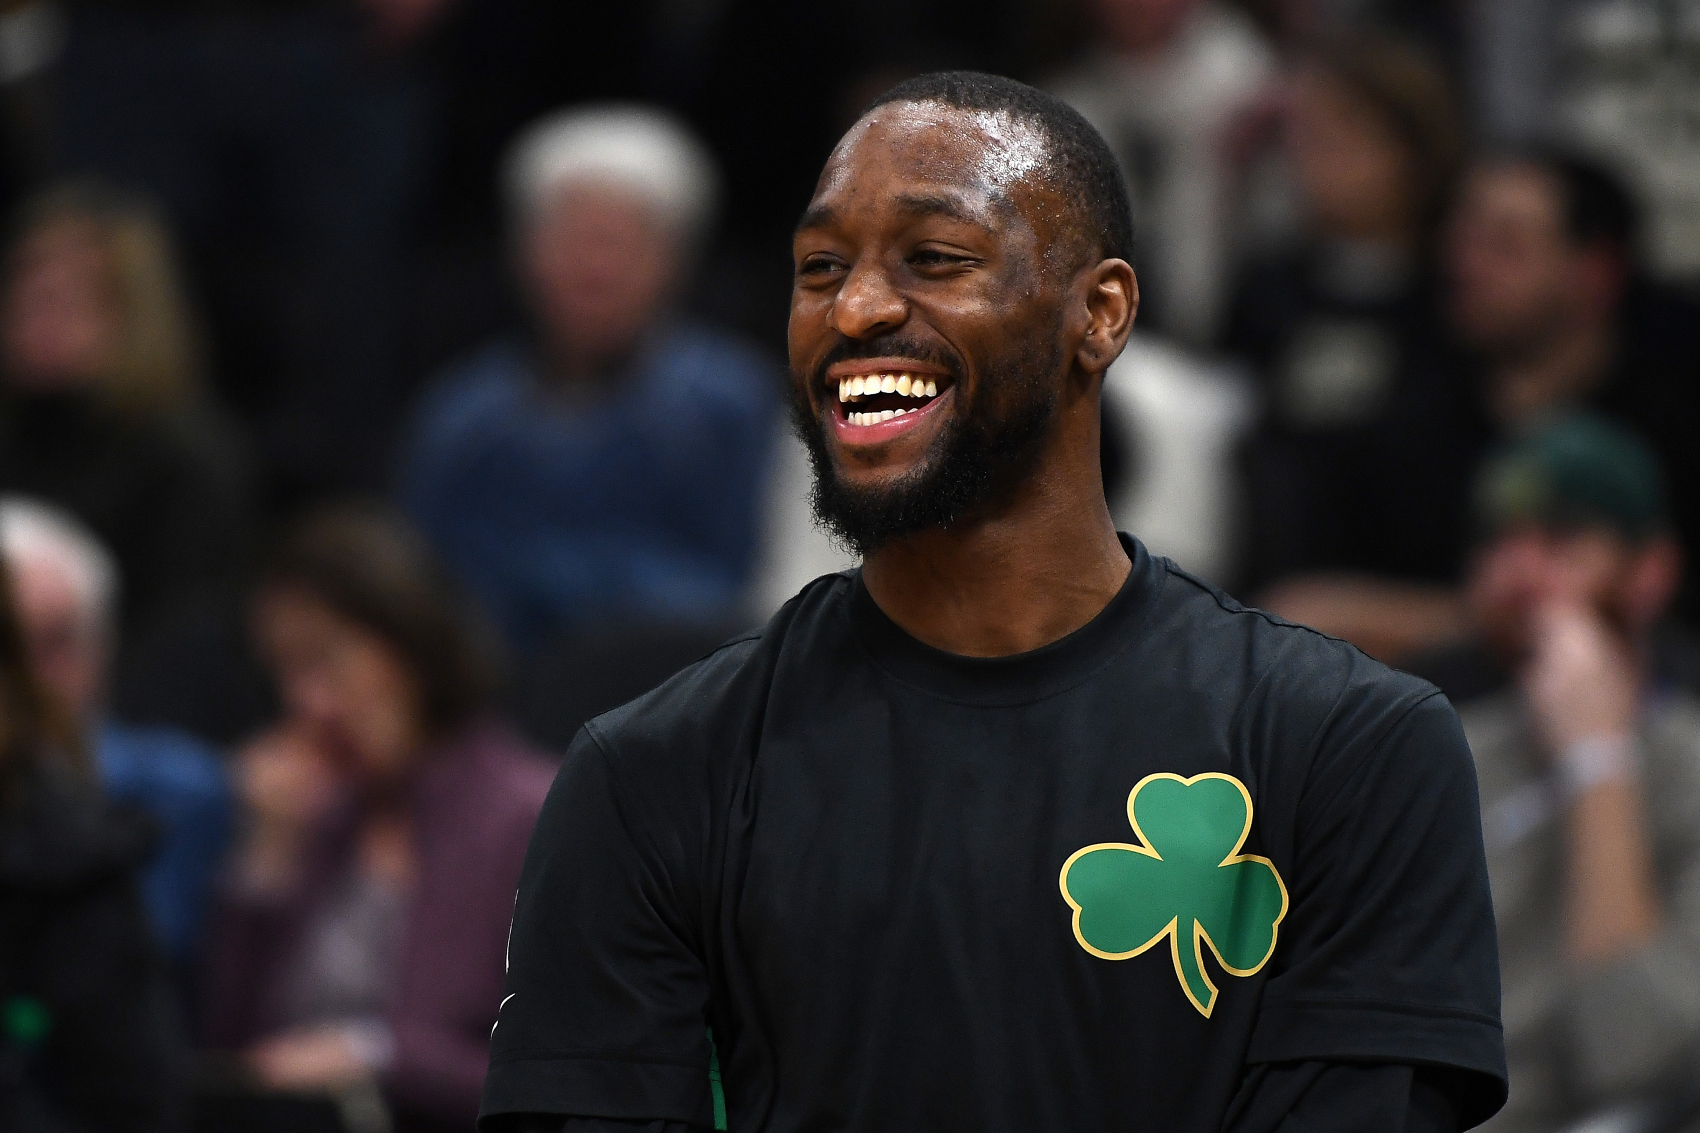 Kemba Walker hardly played in any playoff games prior to joining the Boston Celtics. He still, however, has a massive net worth.